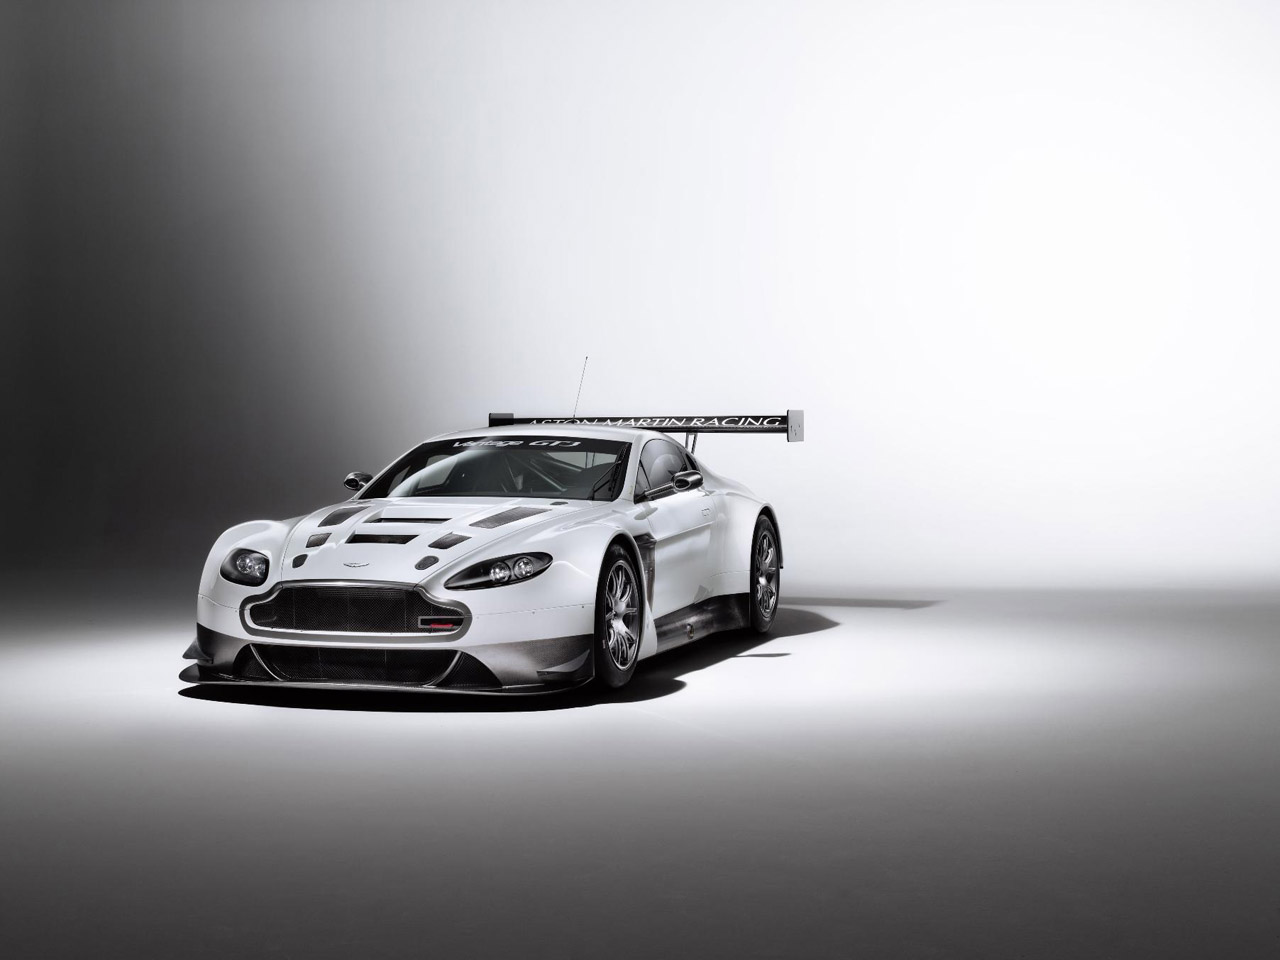 Aston Martin V12 Vantage GT3 Photo Gallery - Autoblog